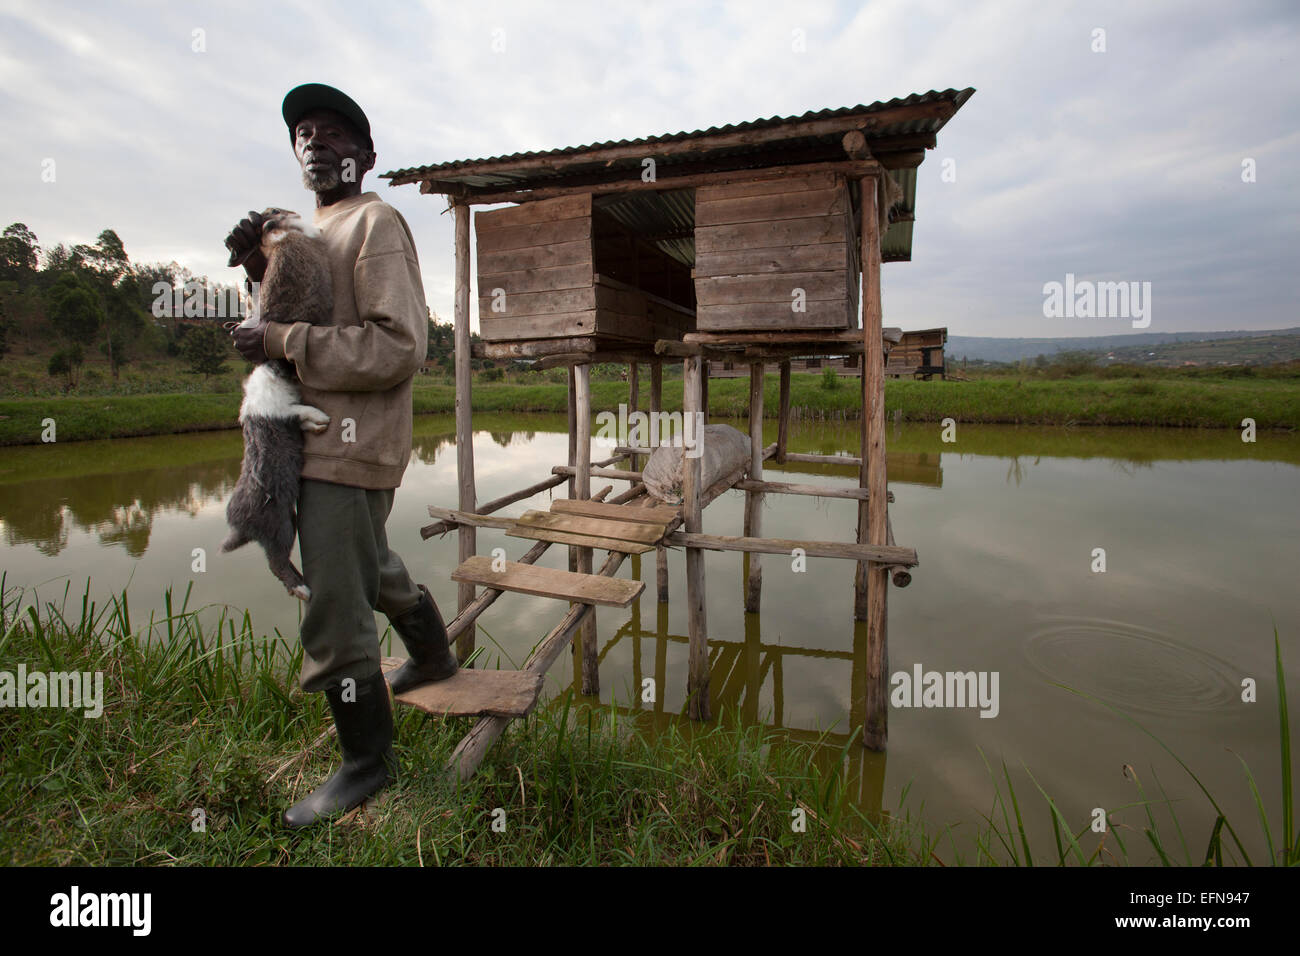 Rwandan farmers show off domestic rabbits outside their hutches which sit over a fishpond, Rwanda - Stock Image